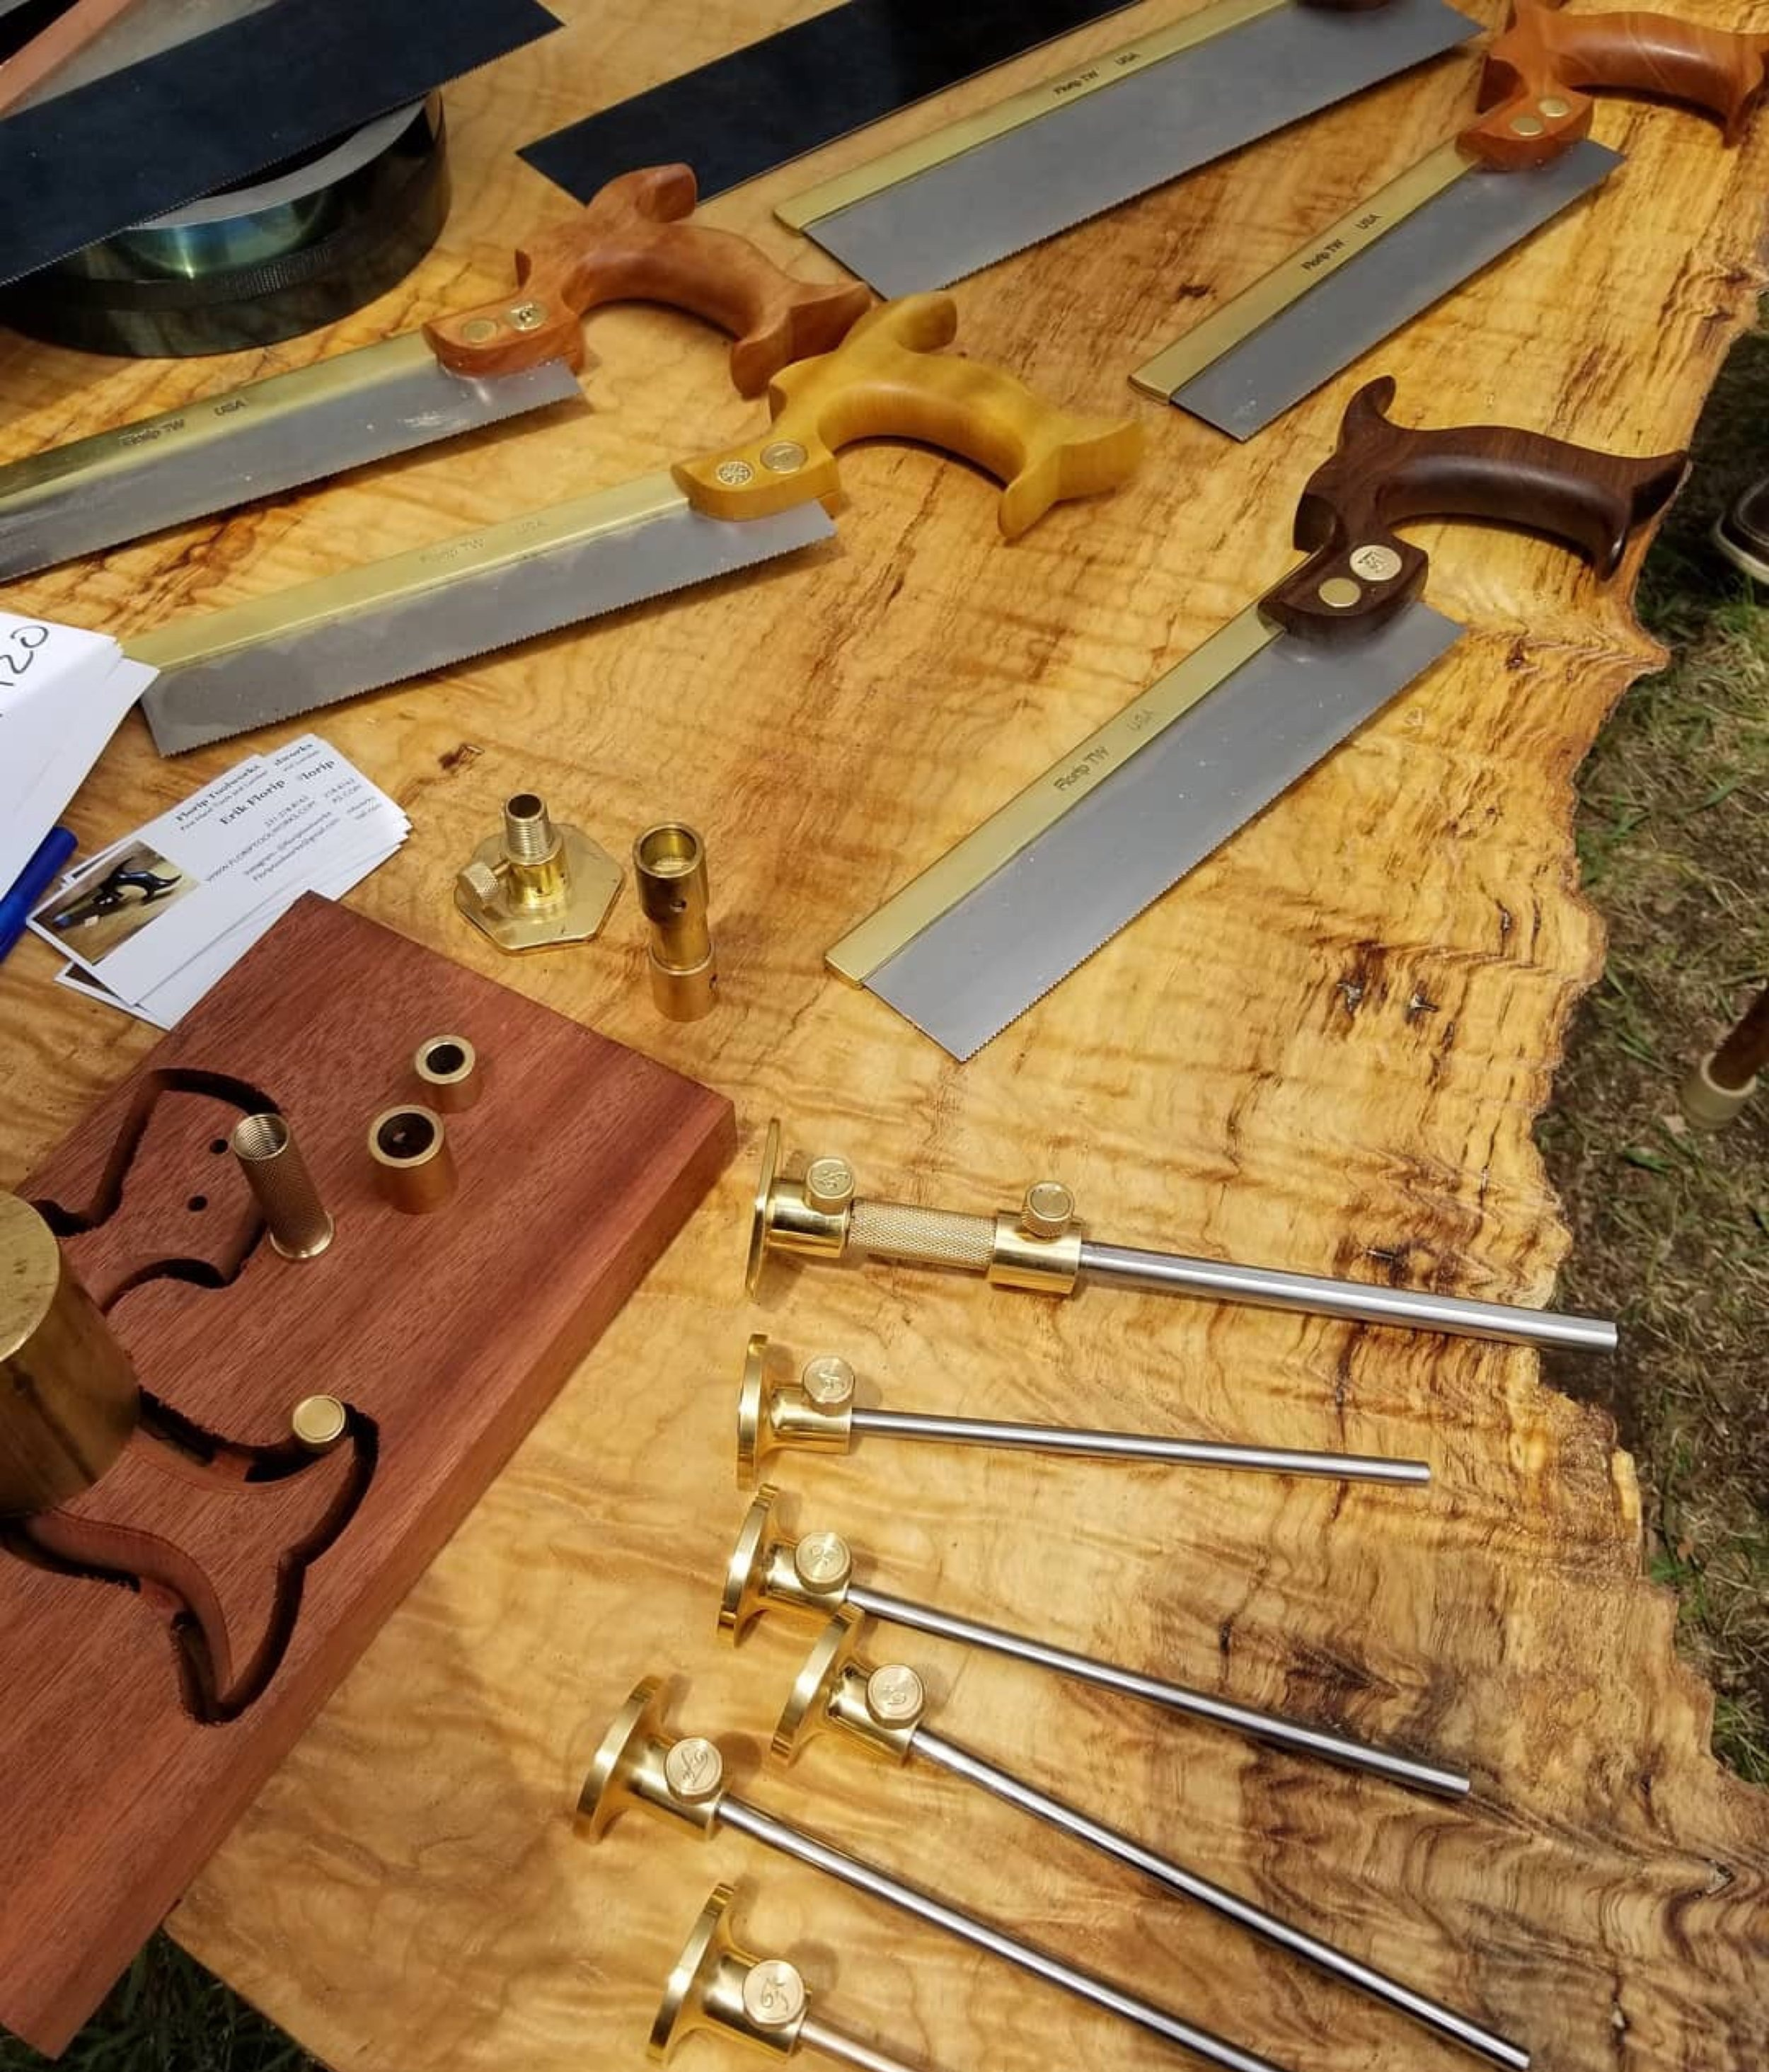 Erik+Florip+-+Toolmaker+at+the+Great+Lakes+Woodworking+Festival